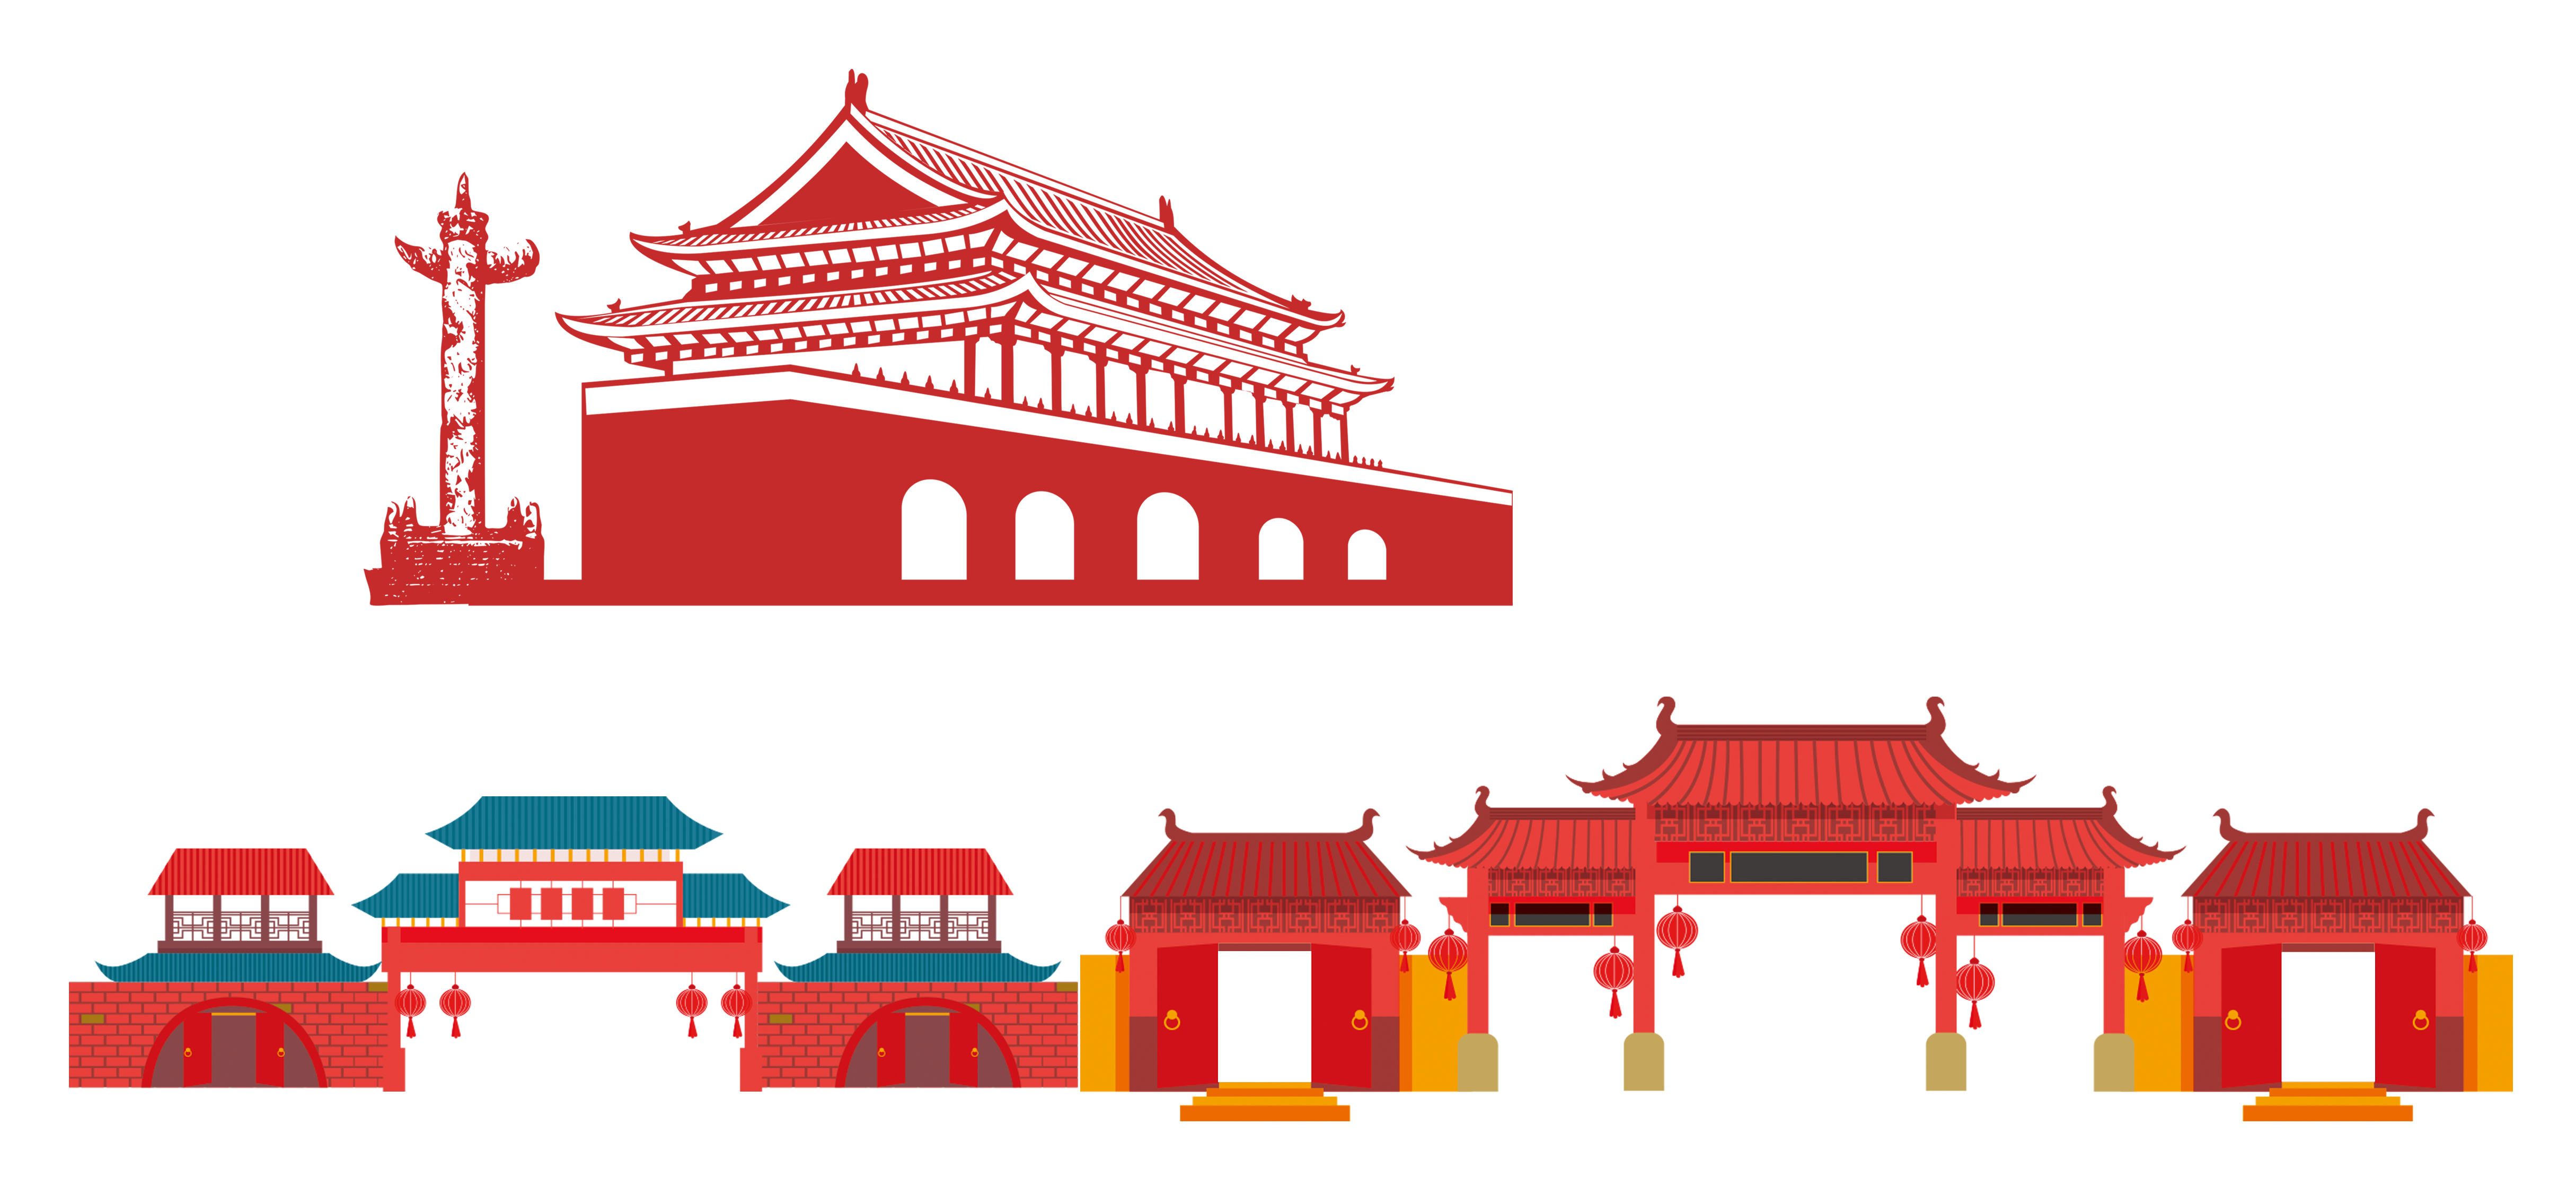 Anhui paifang th national. Palace clipart old house japanese